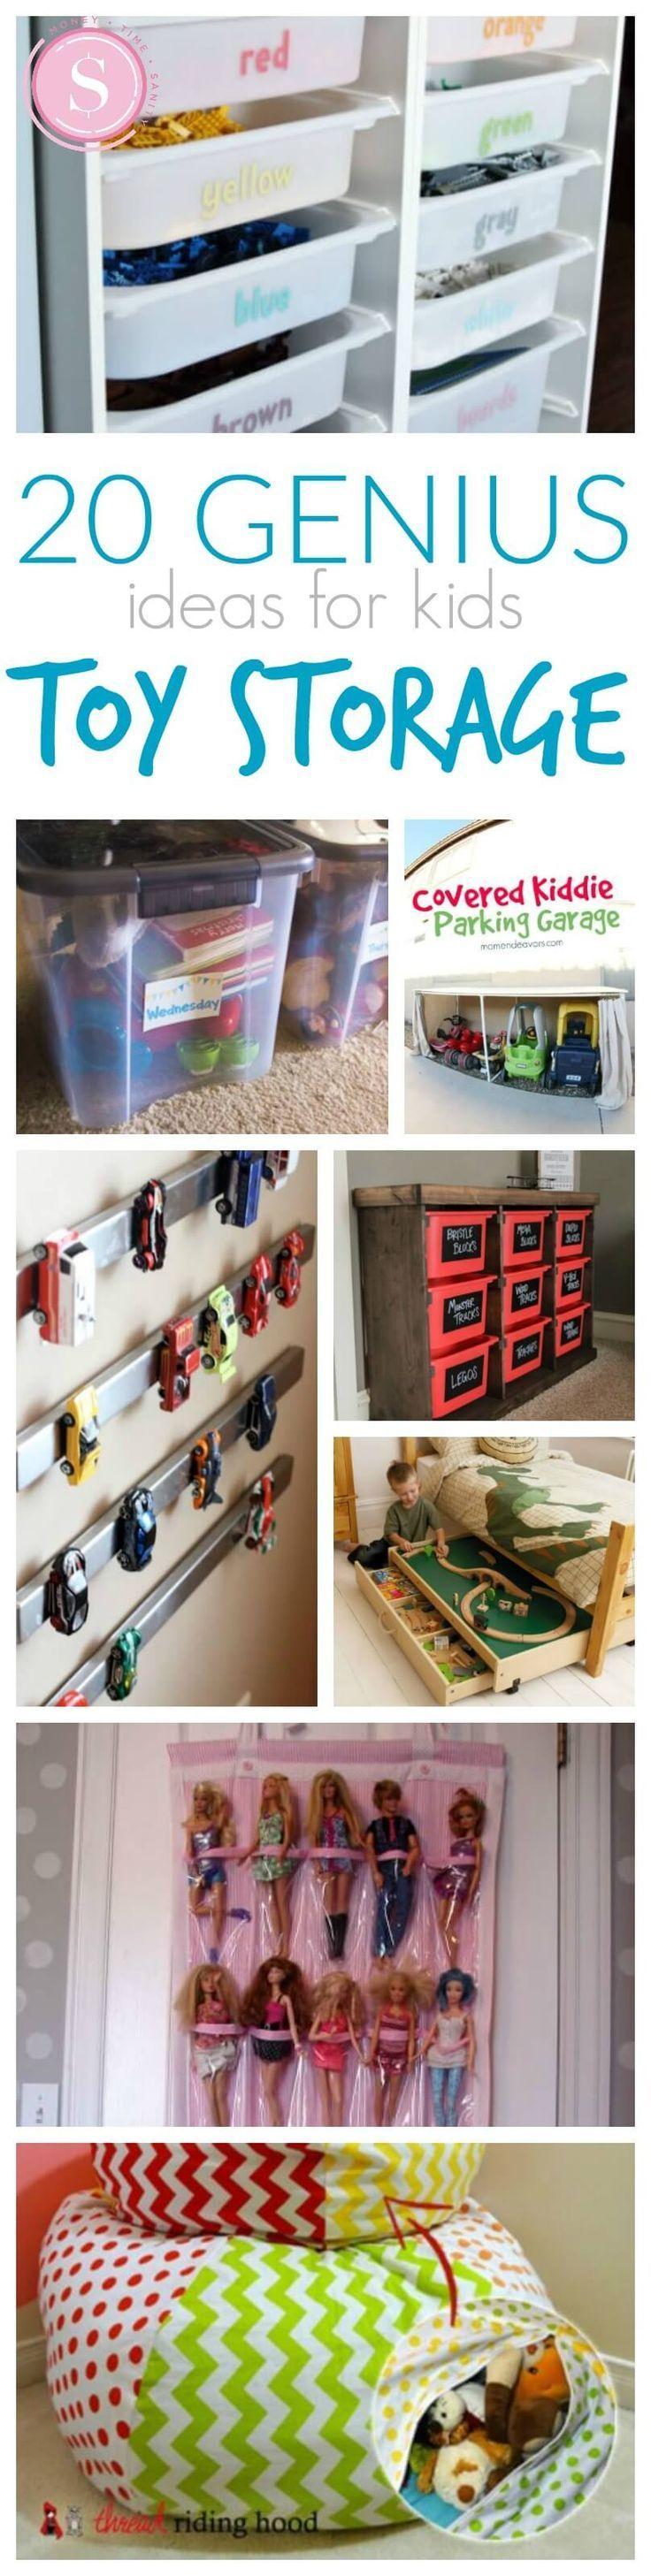 Toy Storage Ideas Diy Plans In A Small Space That Your Kids Will